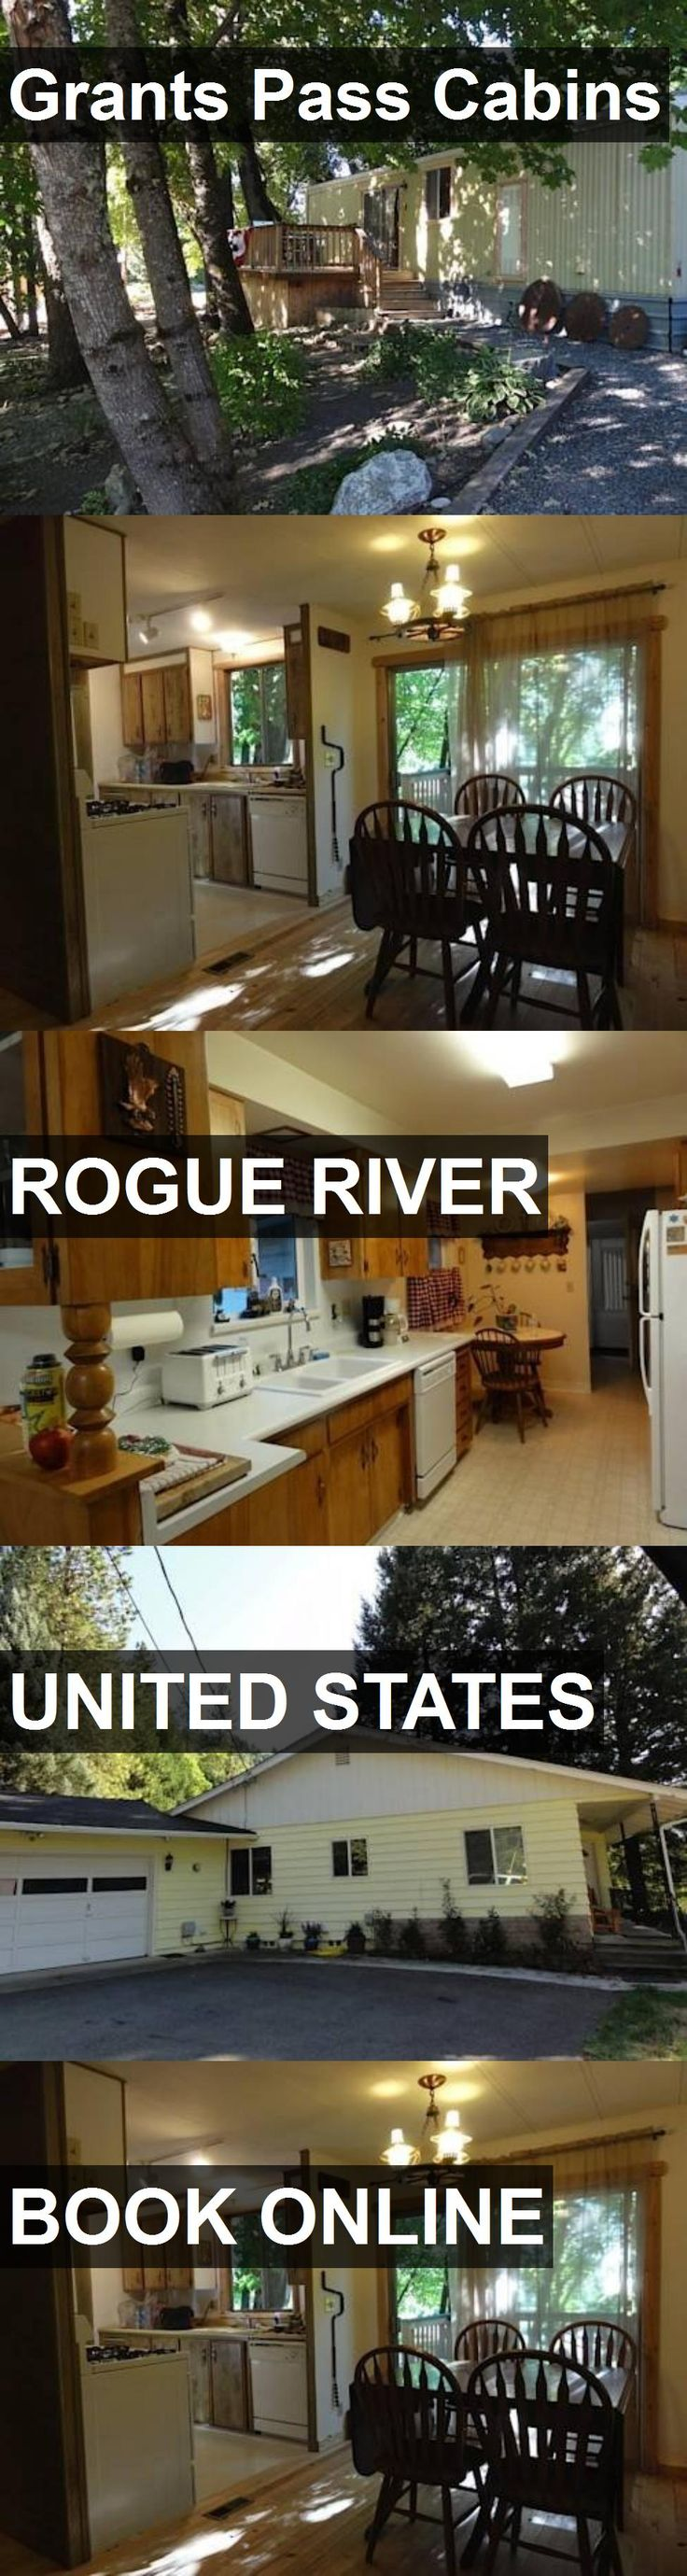 Hotel Grants Pass Cabins in Rogue River, United States. For more information, photos, reviews and best prices please follow the link. #UnitedStates #RogueRiver #GrantsPassCabins #hotel #travel #vacation